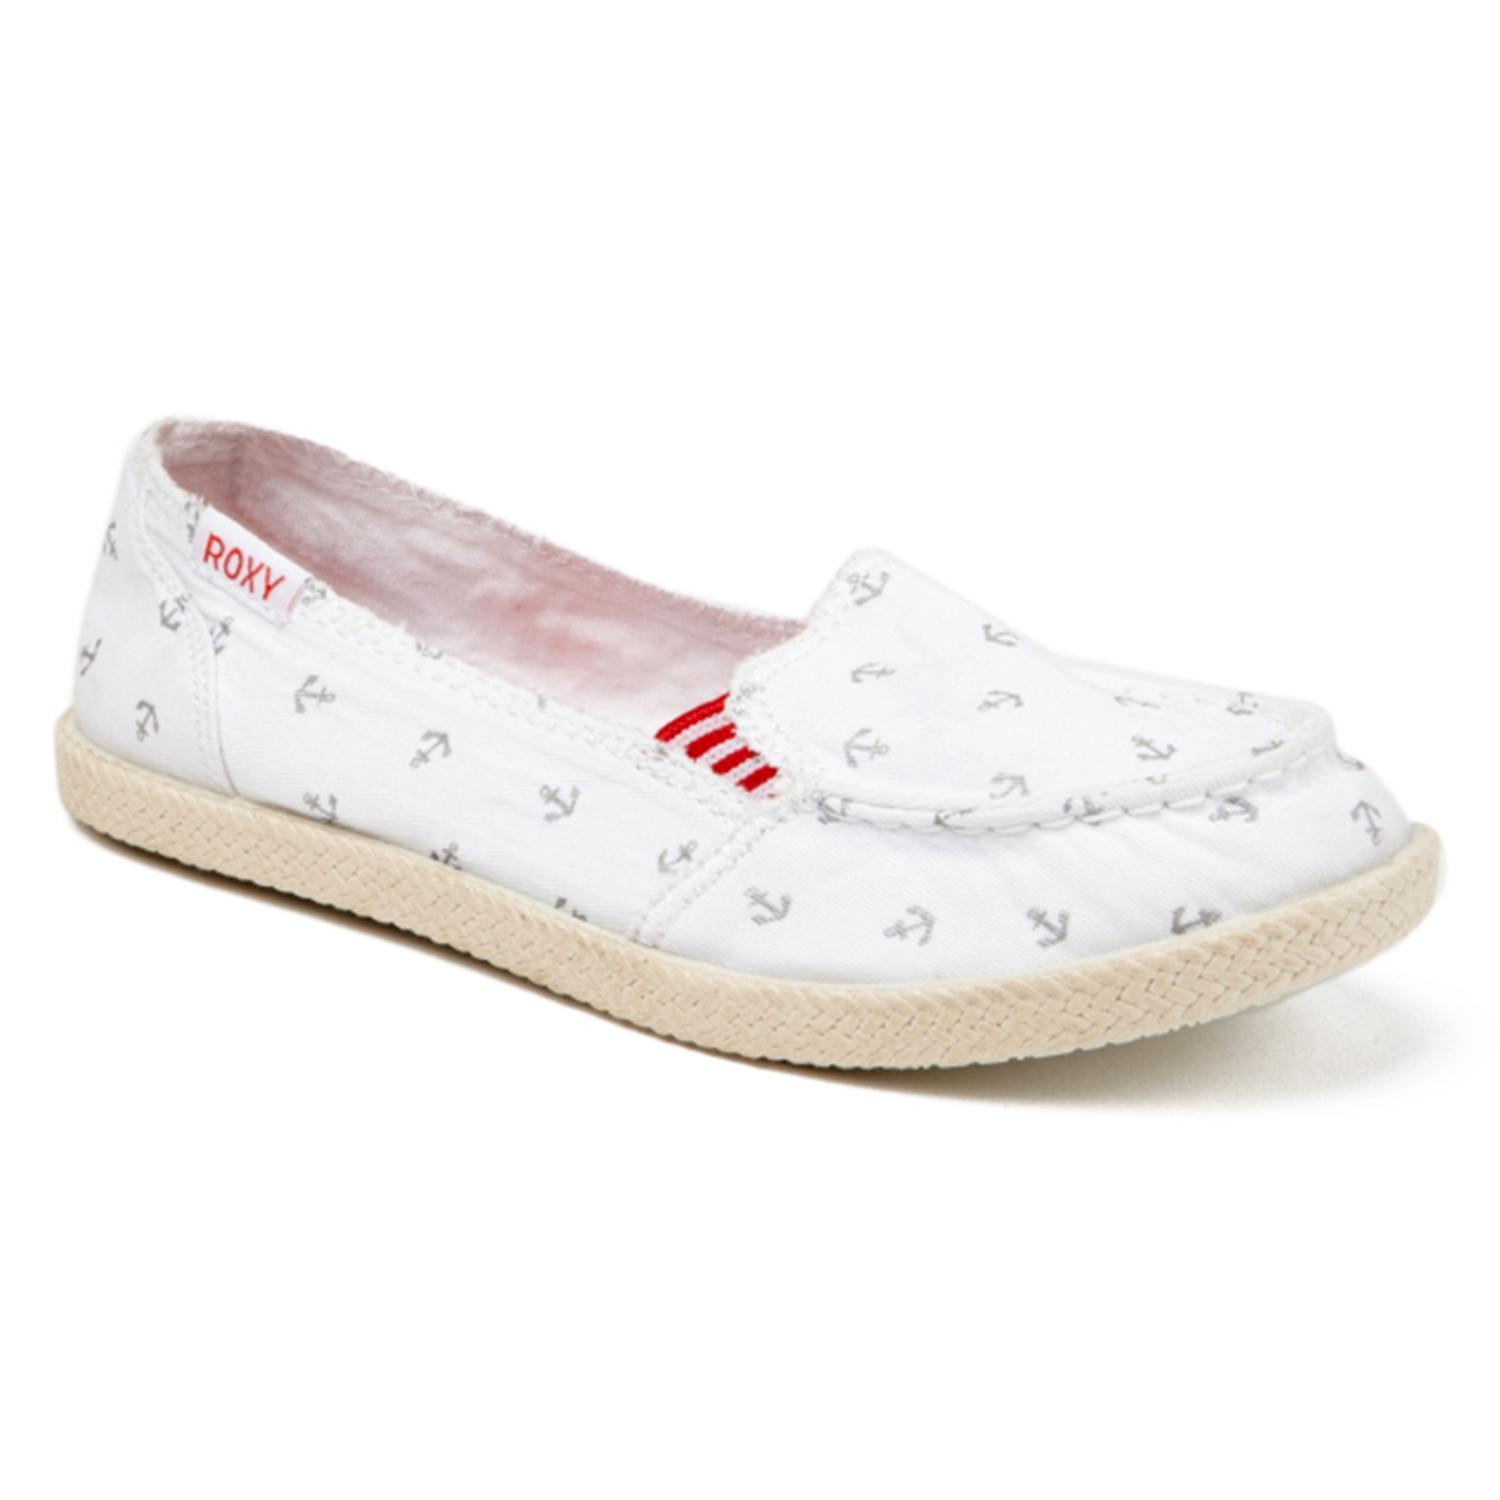 Roxy Lido Rope Slip-On Shoes - Women's | evo outlet